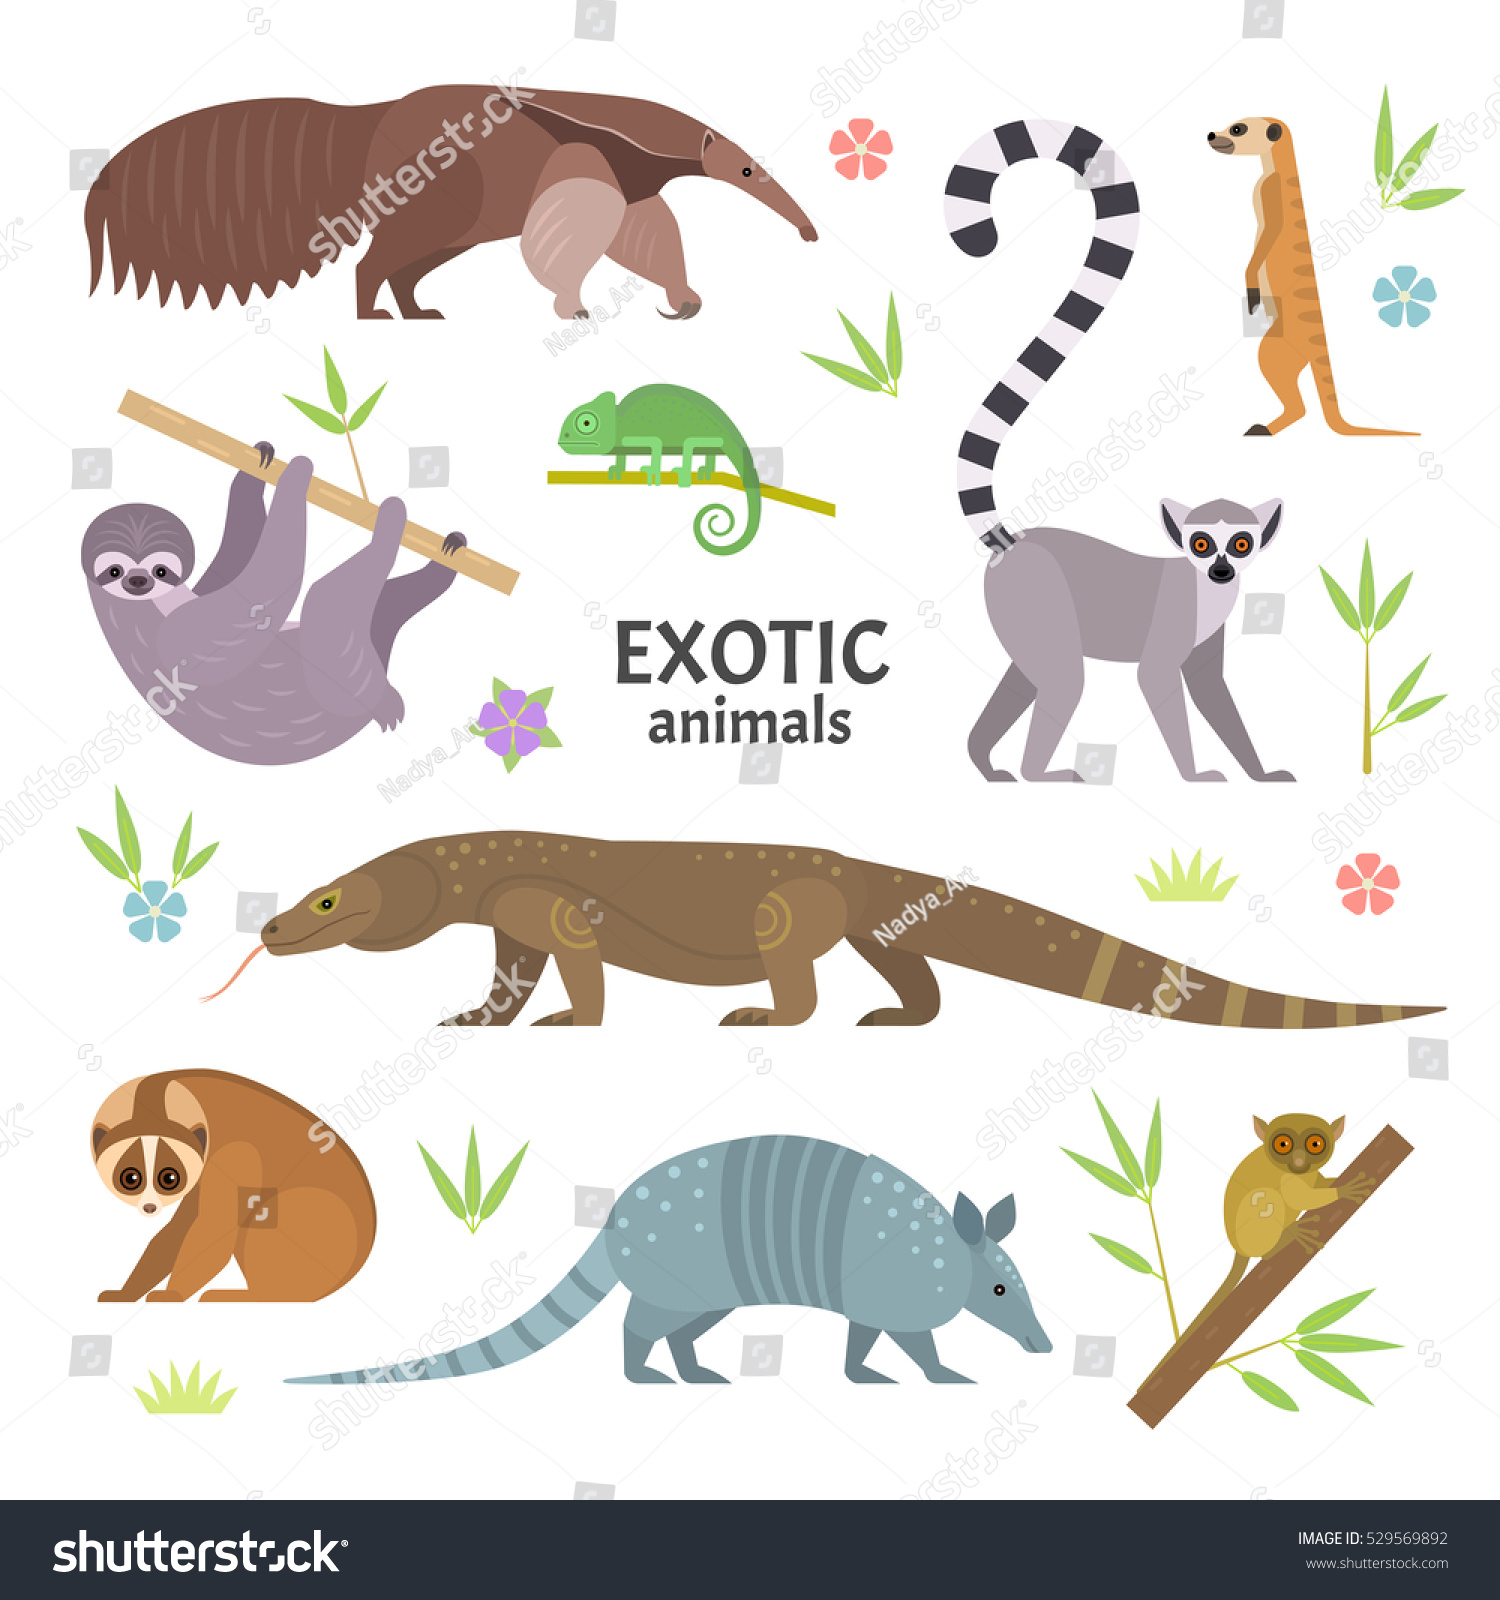 Stock Vector Exotic Animals Vector Illustration With Flat Animals Including Anteater Ring Tailed Lemur Lemur on Lemur Food Web Diagram